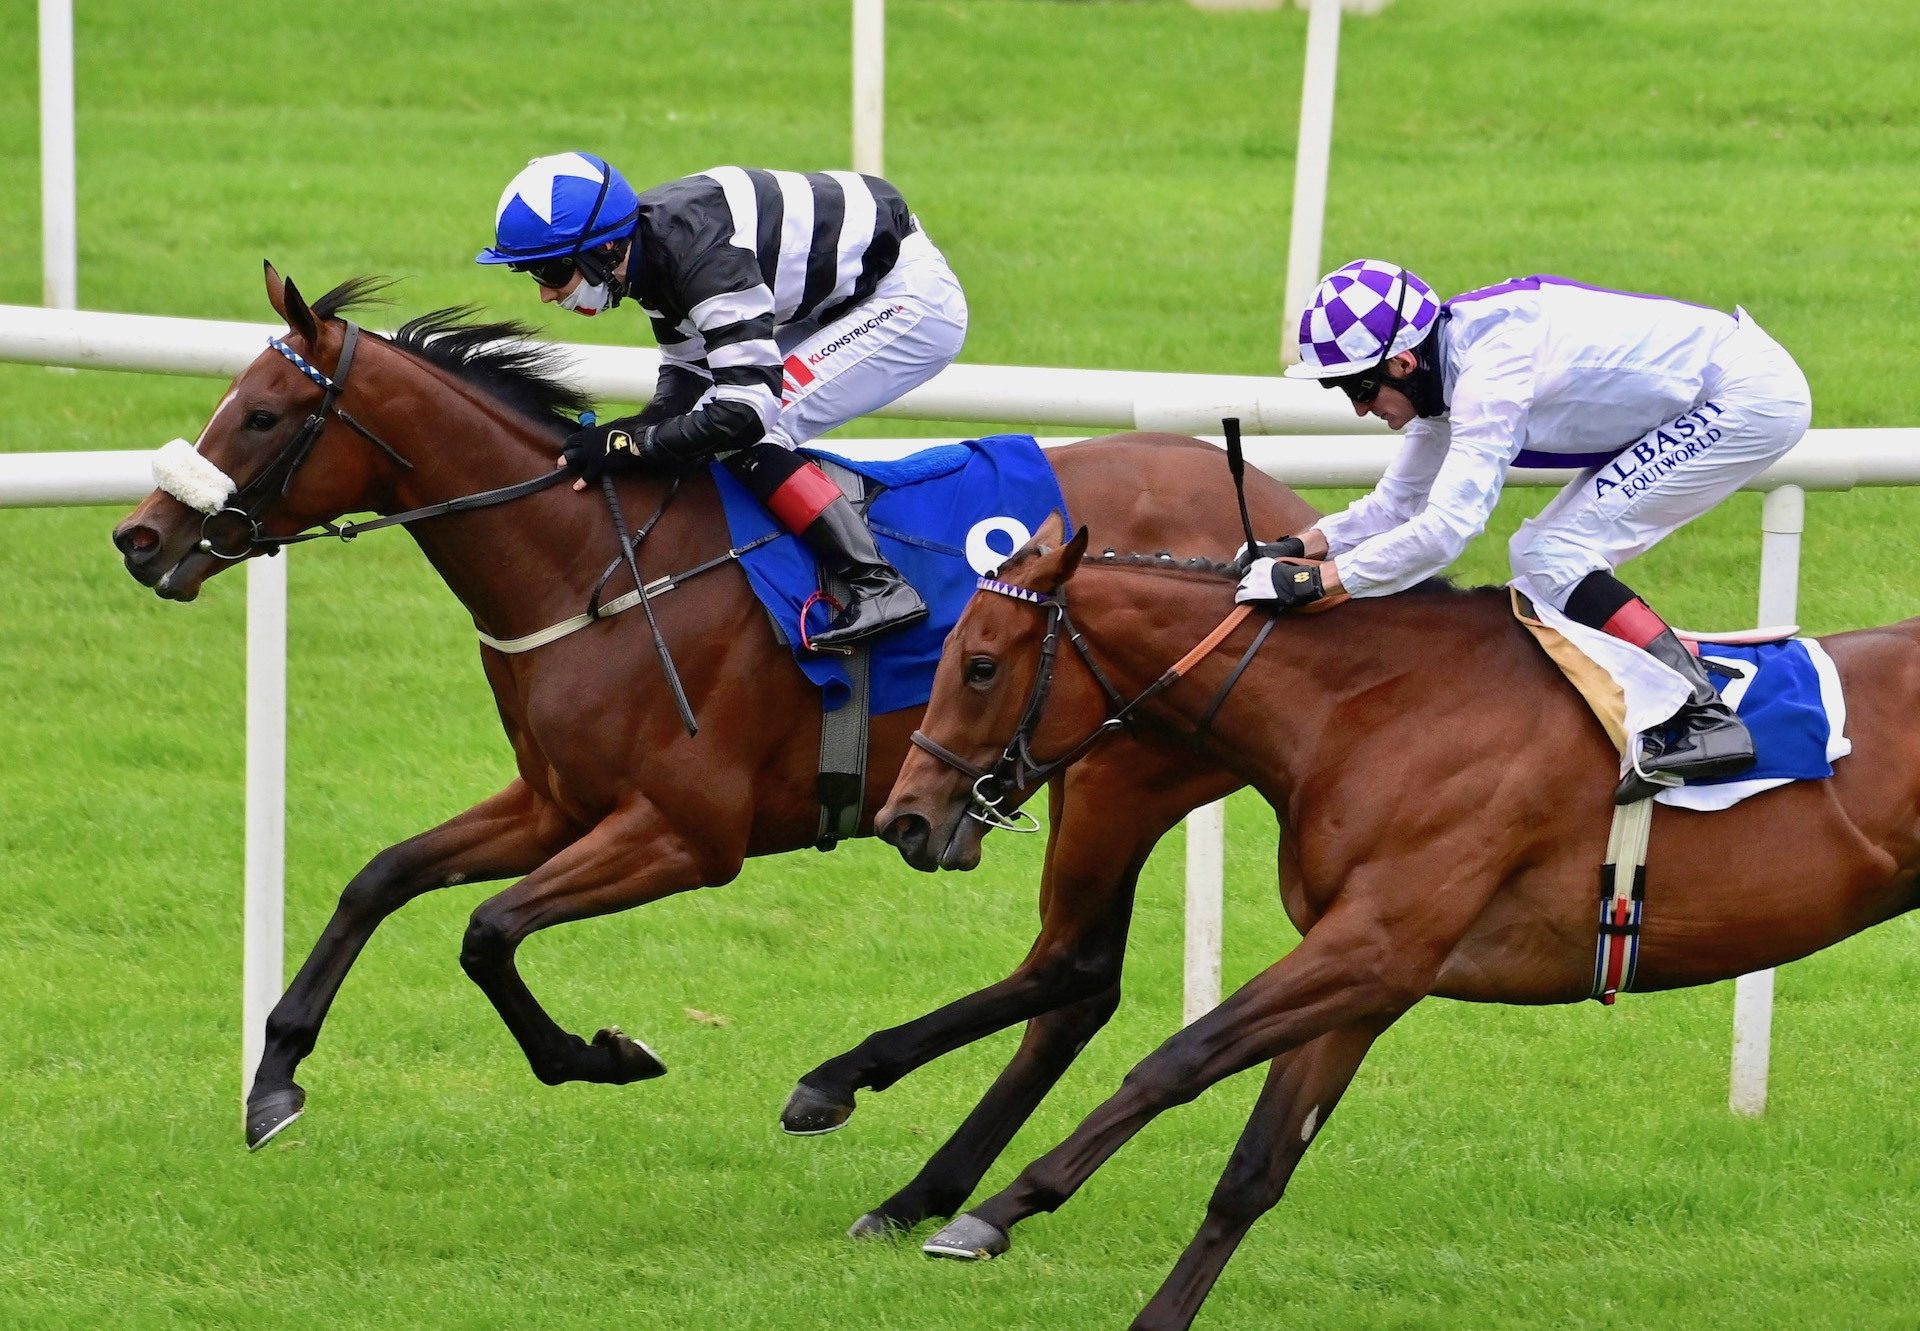 Malayan (The Gurkha) Records Her Second Win At Roscommon